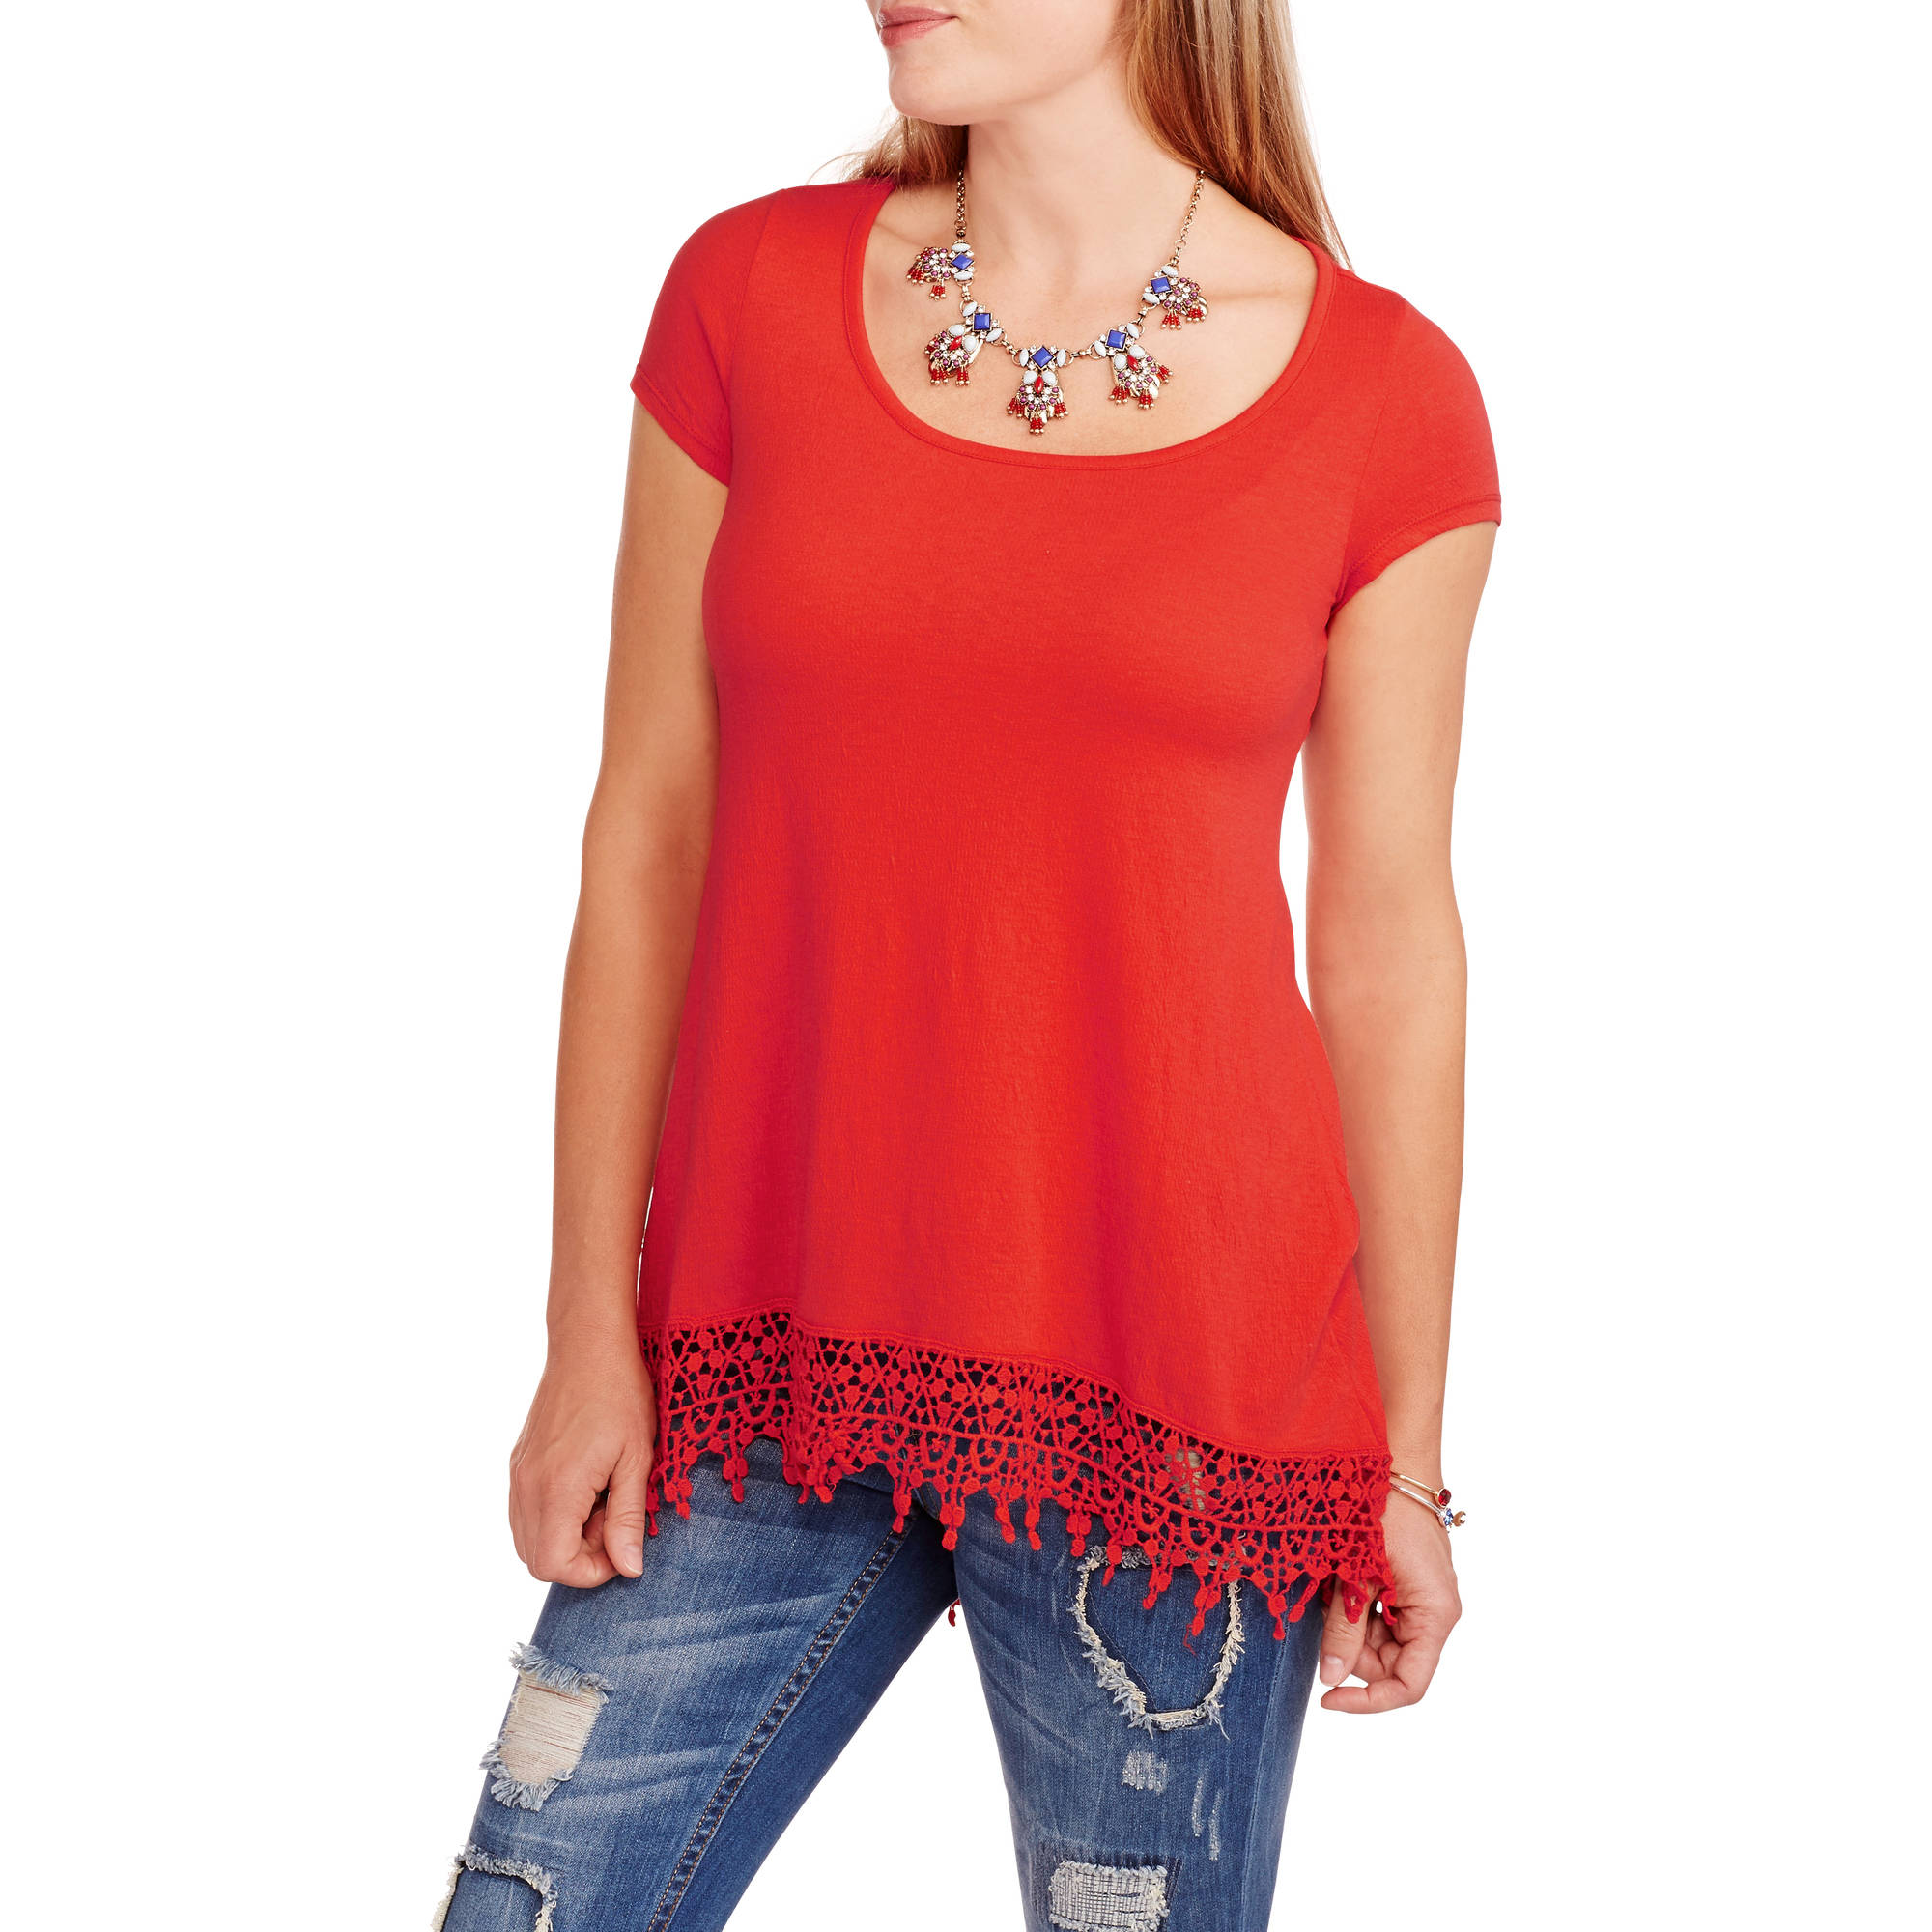 French Laundry Women's Hi-Lo Tee with Crochet Trim